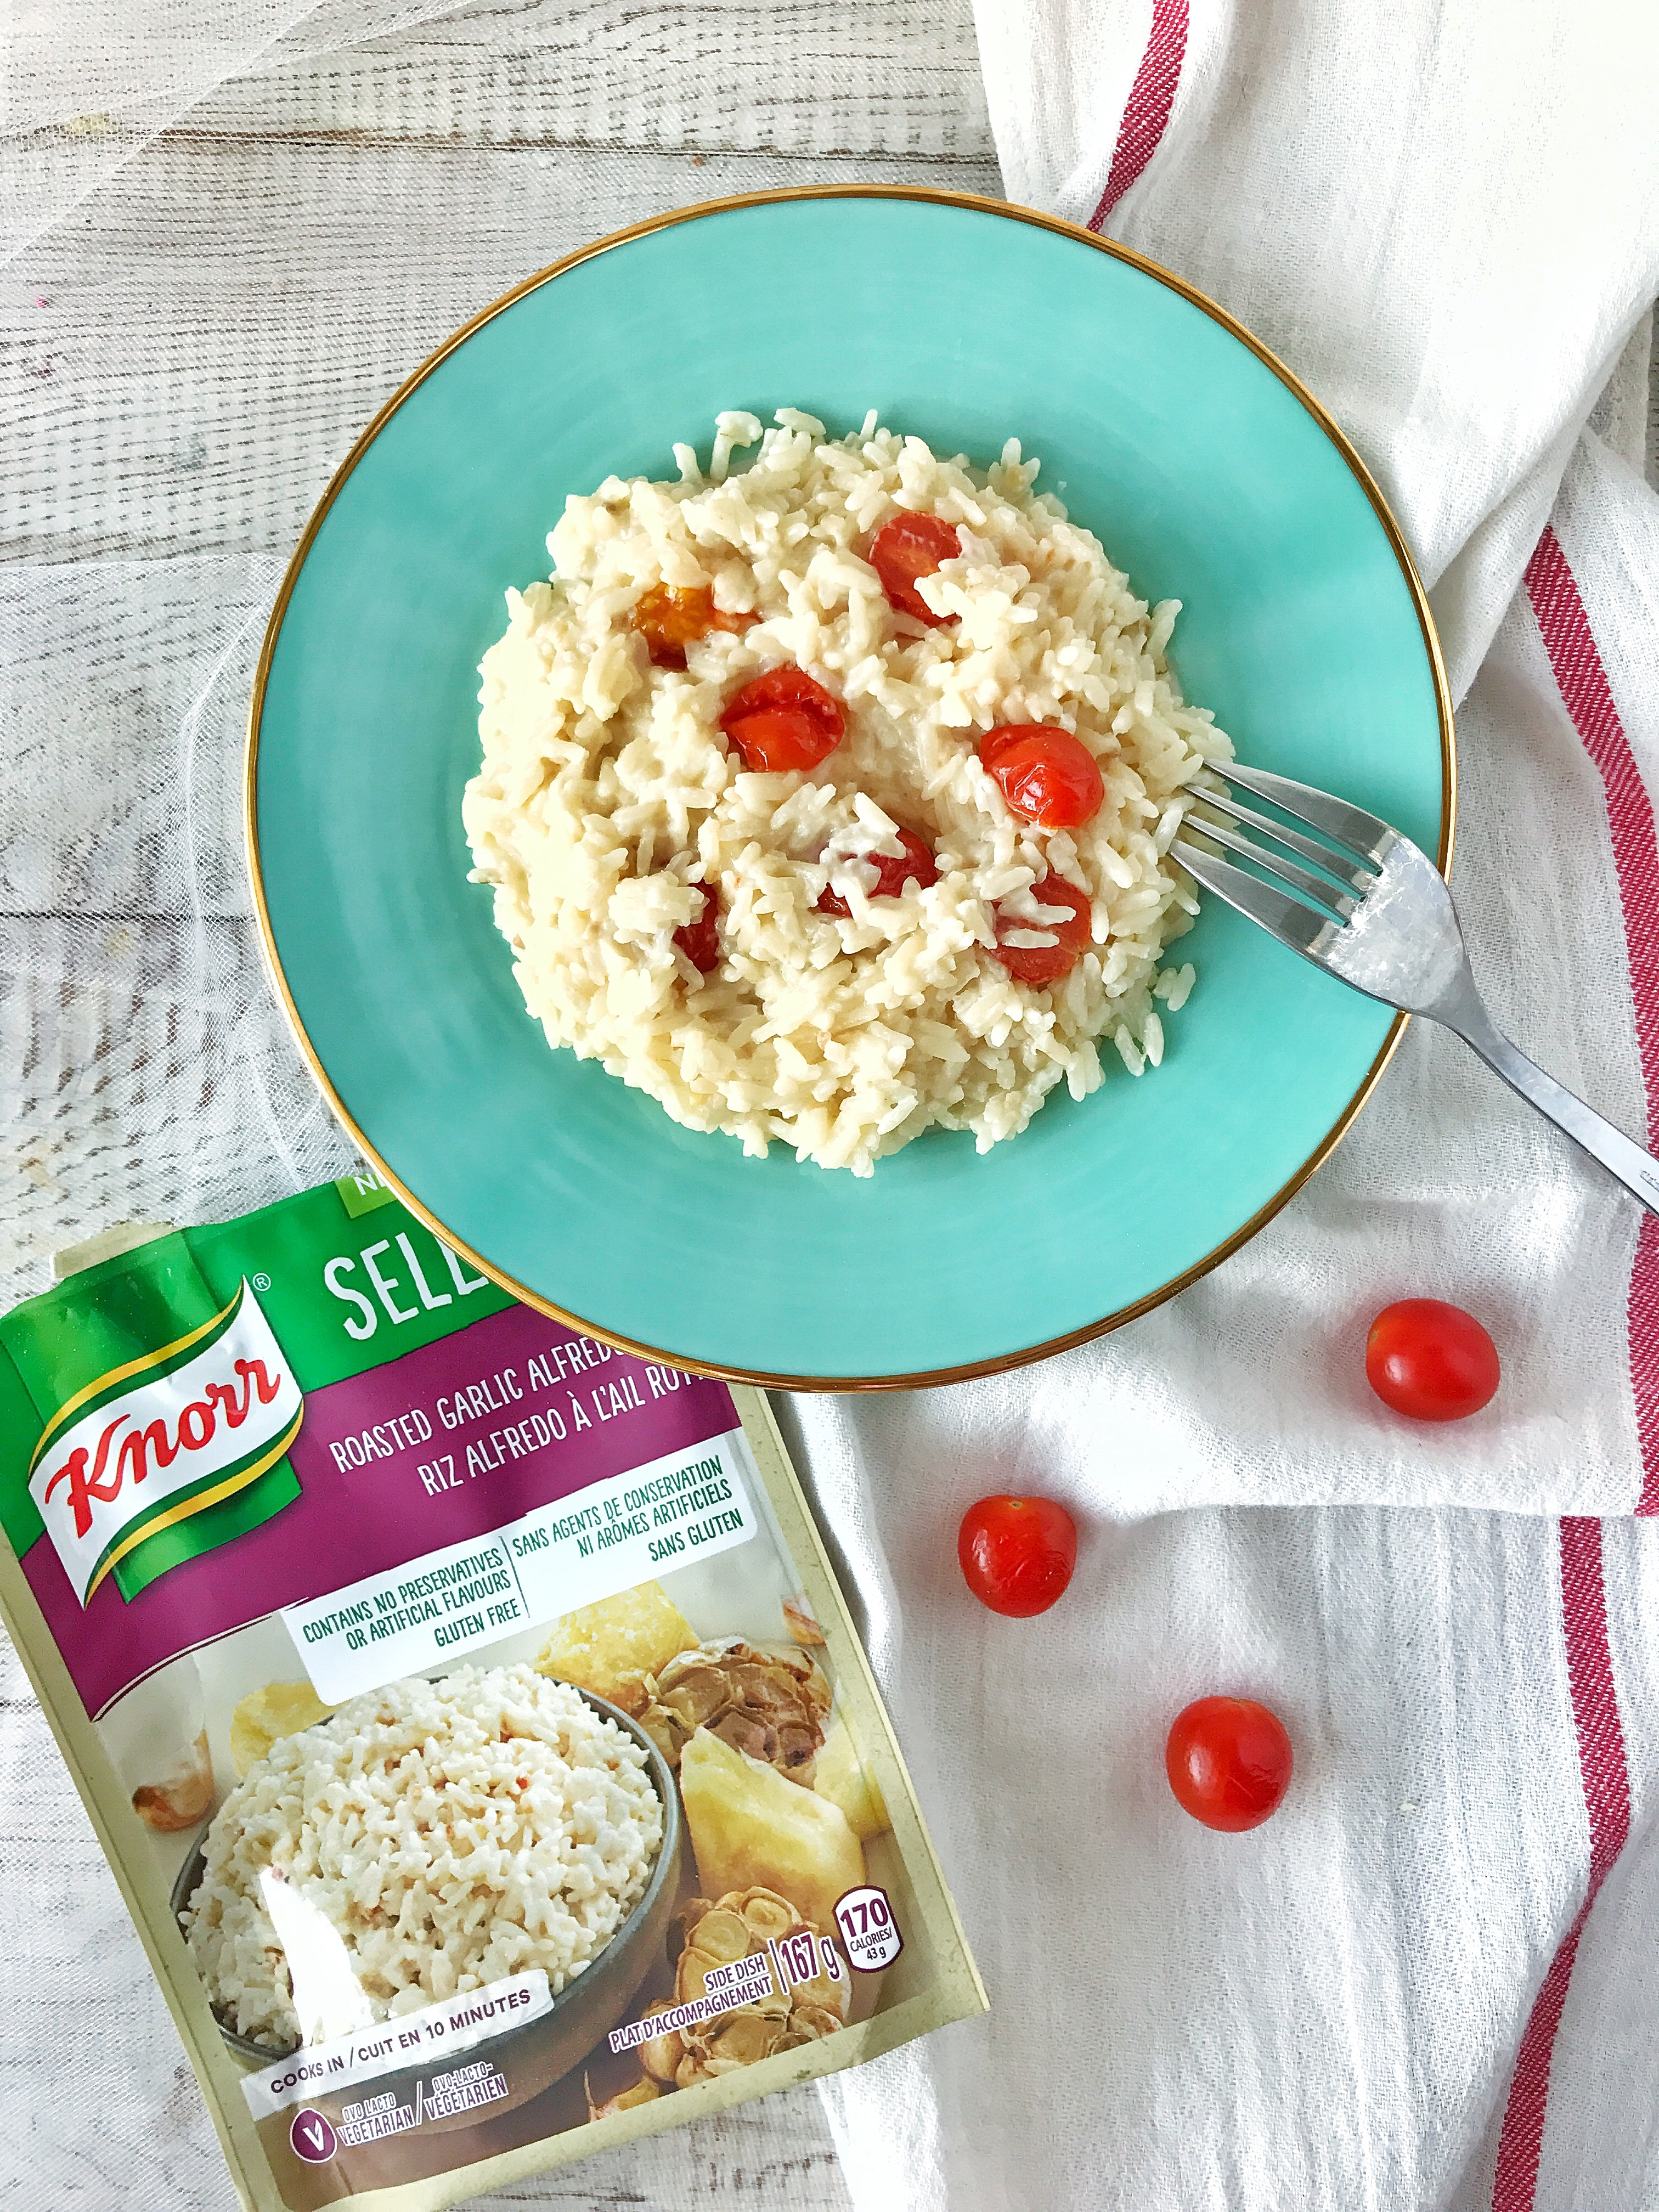 Knorr Selects Roasted Garlic Alfredo Rice Reviews In